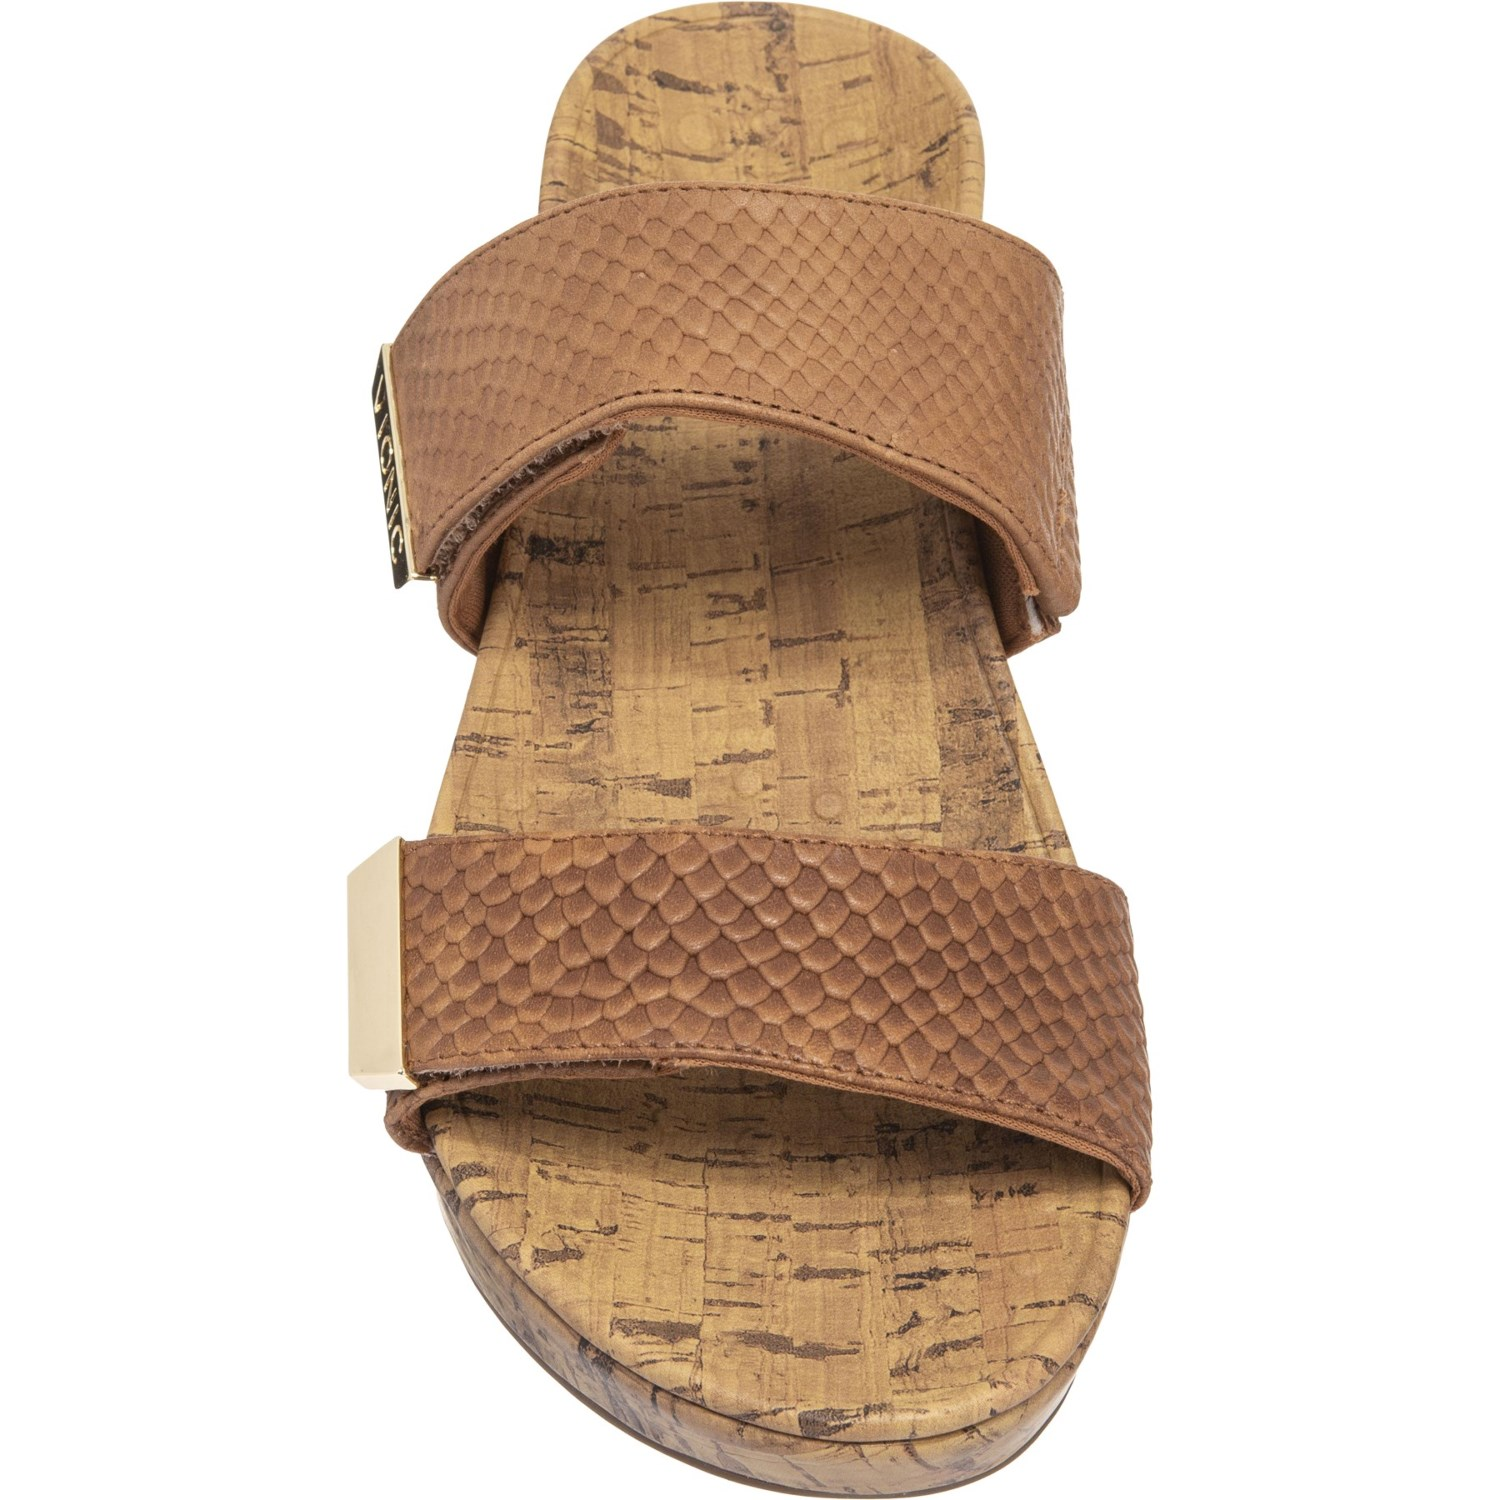 331384c98cd6 Vionic Orthaheel Technology Pepper Wedge Sandals (For Women) - Save 25%